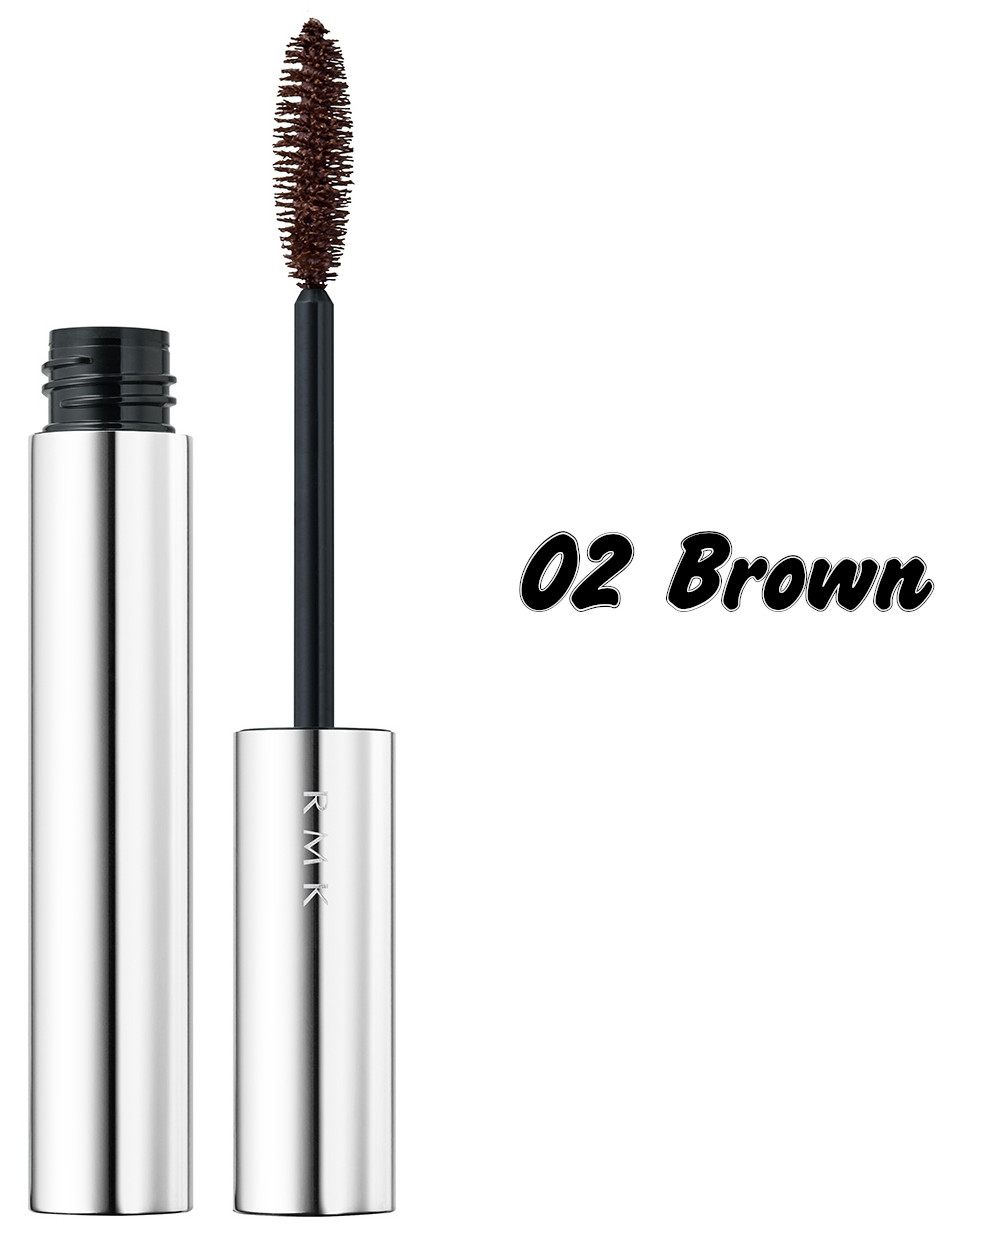 RMK The Now Now Summer 2021 Collection High Volume Mascara 02 Brown